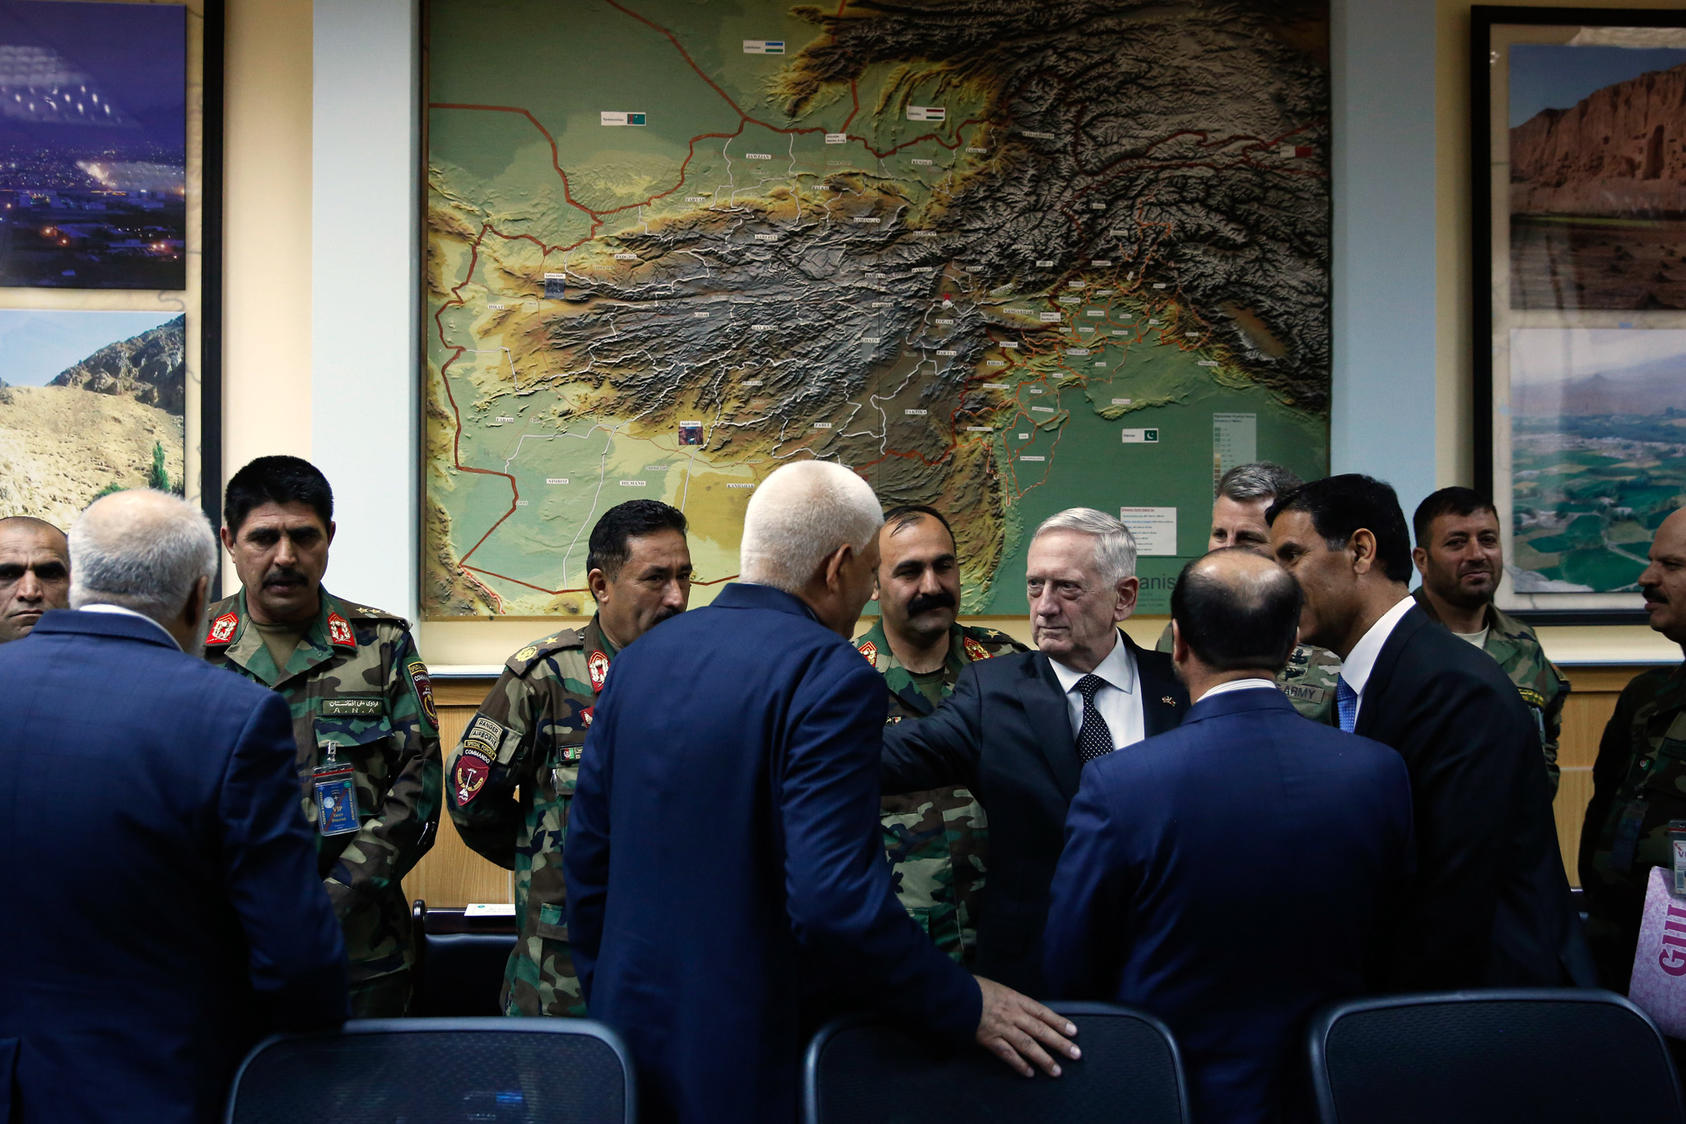 U.S. Defense Secretary James Mattis, center, meets with Afghan military leaders in Kabul, Afghanistan, April 24, 2017. As President Donald Trump decides whether to send thousands more troops to Afghanistan, his administration is divided along familiar fault lines, pitting two generals, Mattis and Lt. Gen. H.R. McMaster, against political aides. (Johnathan Ernst/Pool via The New York Times)